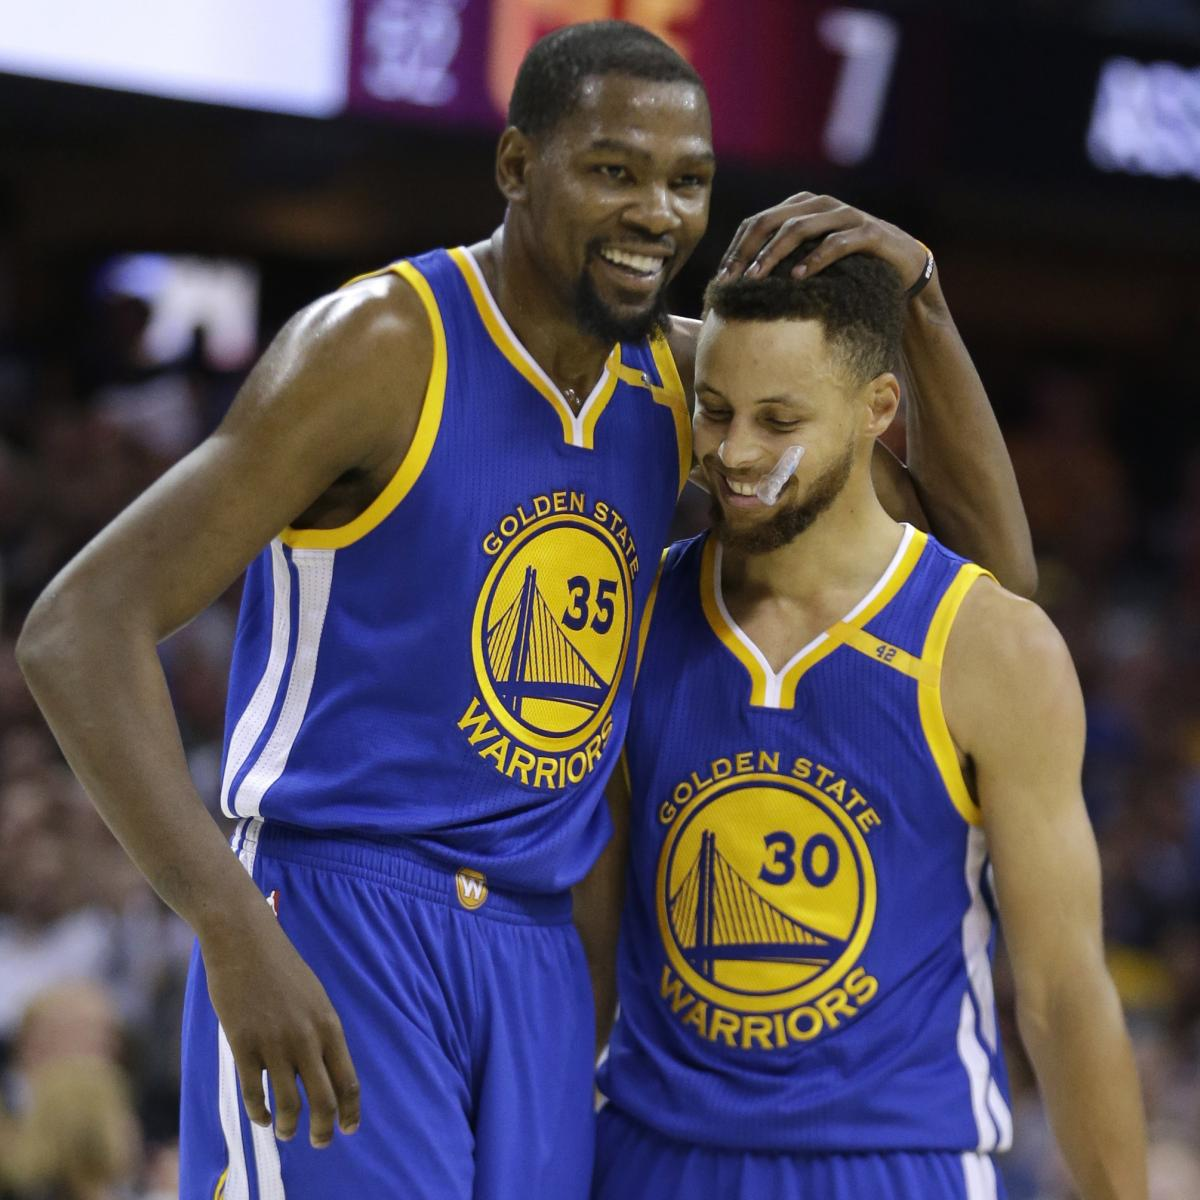 Warriors, Rakuten Agree to Reported $20 Million Per Year Jersey SponsorshipCleveland Cavaliers - FC Barcelona - Golden State Warriors - Goodyear Tire And Rubber Company - Japan - National Basketball Association - NBA - Rakuten - San Francisco - Western Conference